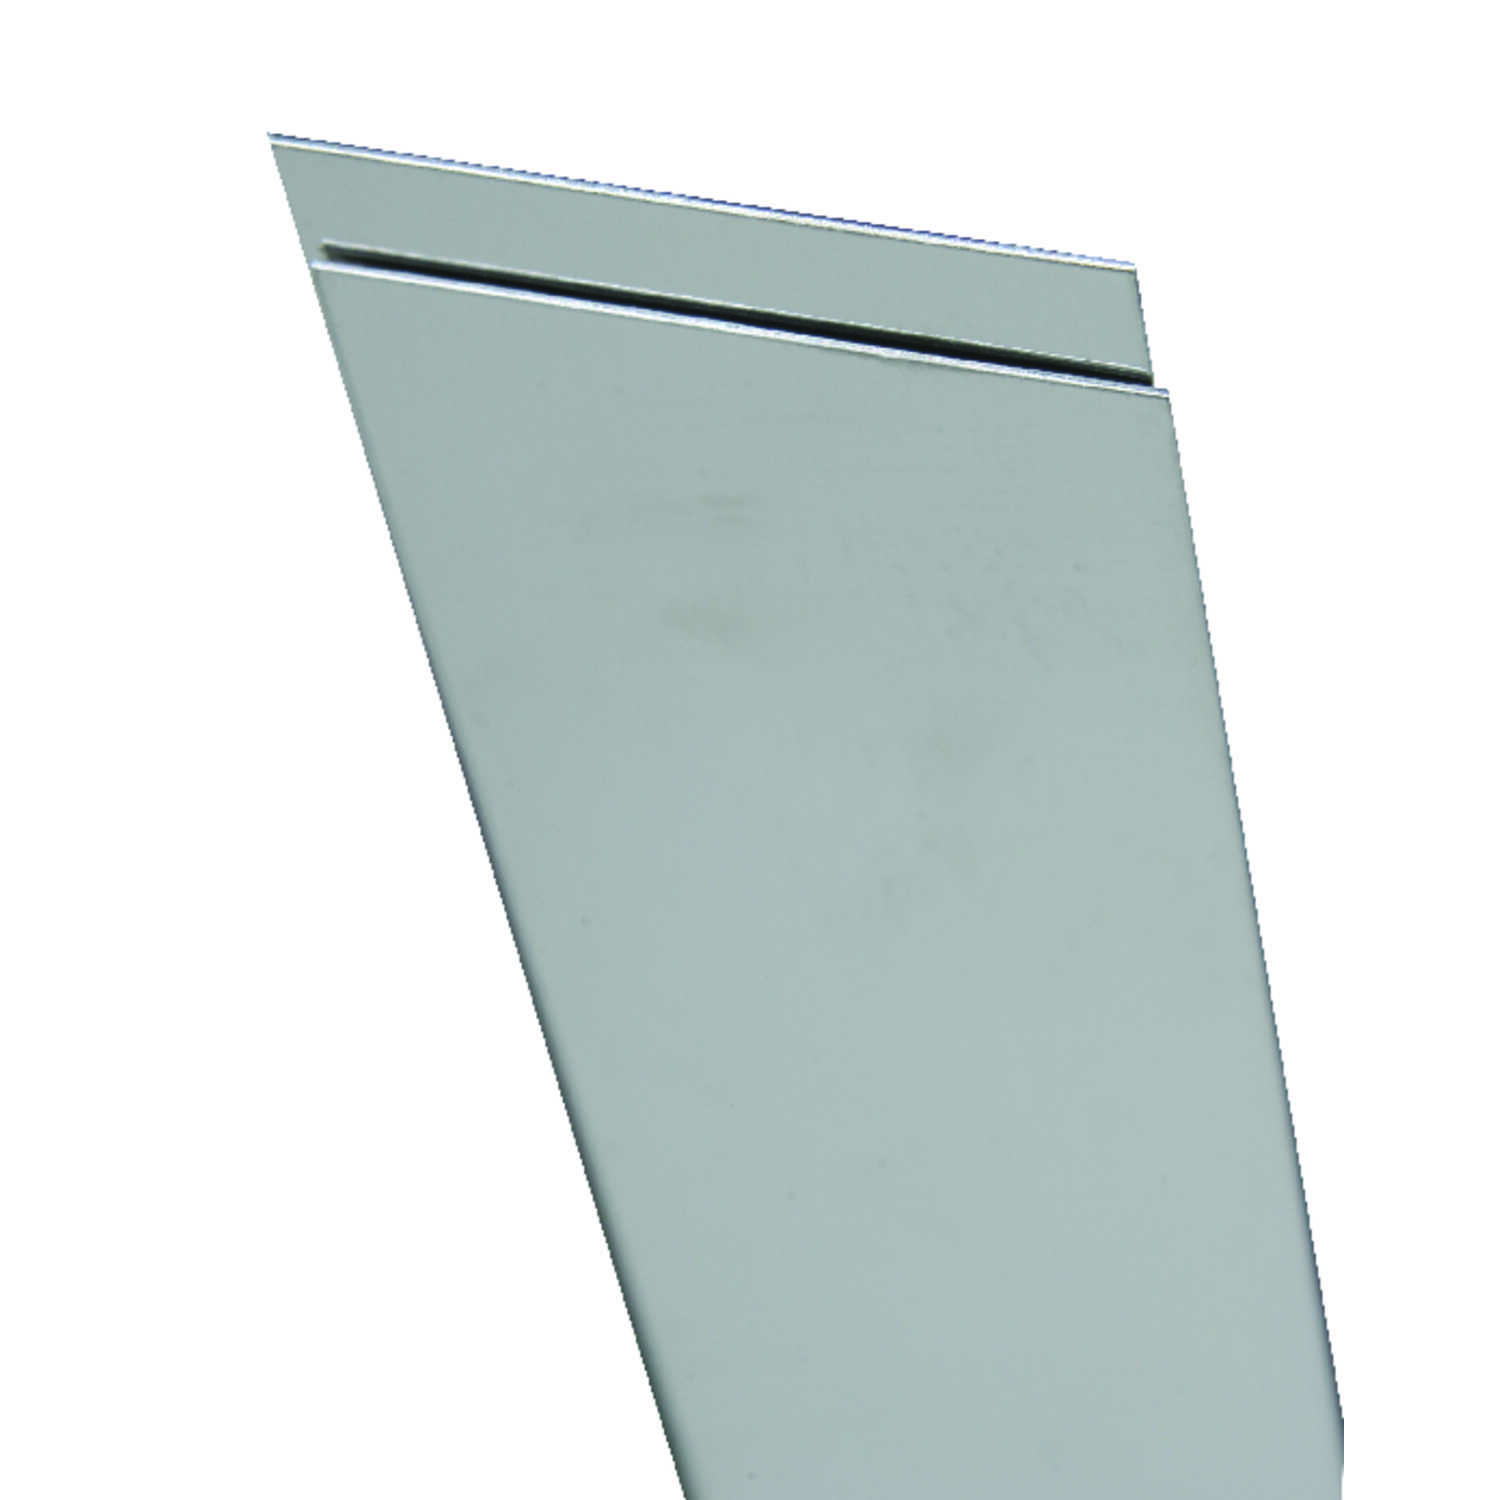 K&S  0.016 in.  x 4 in. W x 10 in. L Aluminum  Sheet Metal